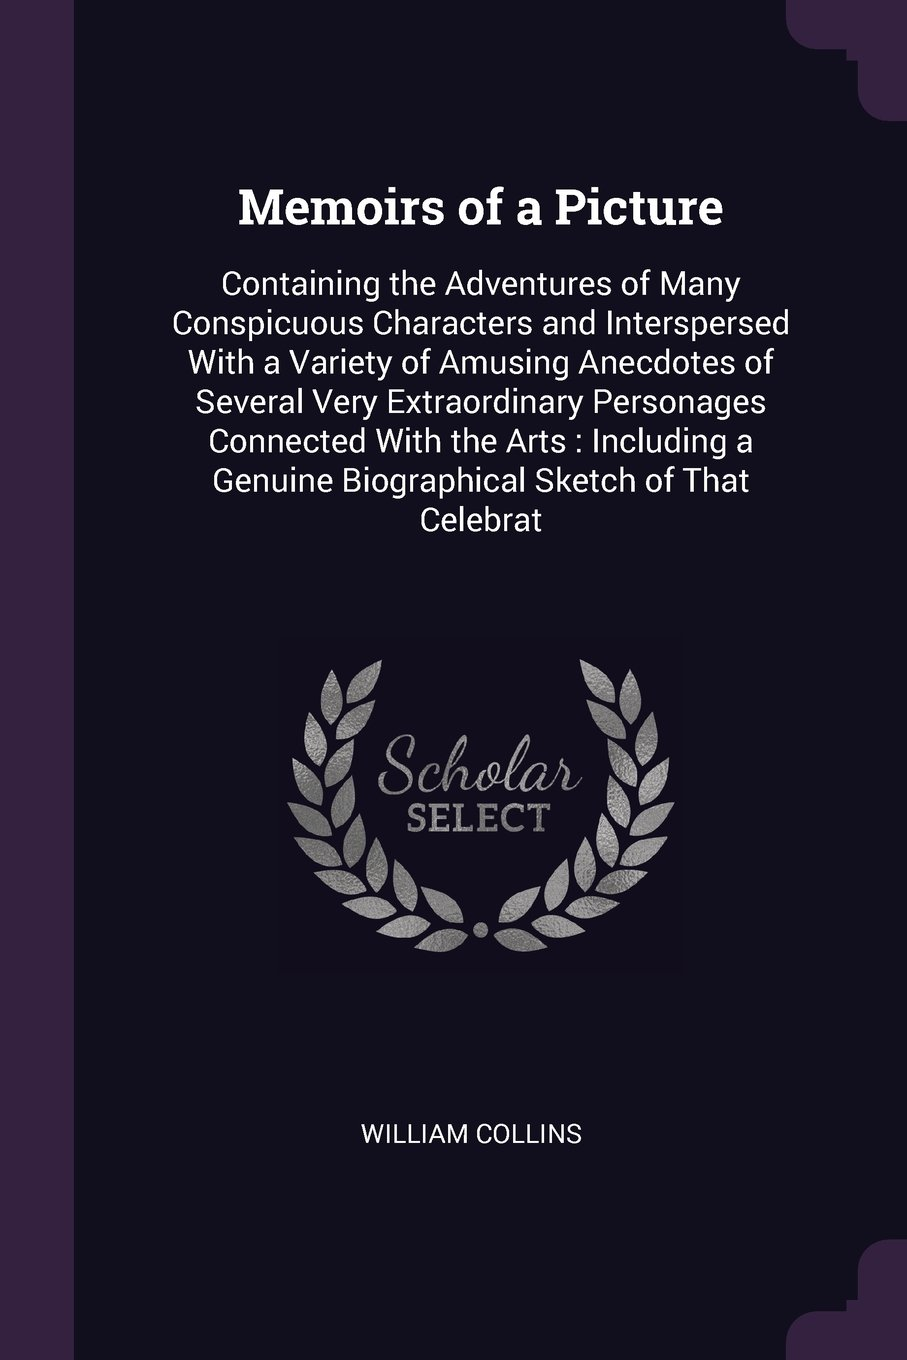 Read Online Memoirs of a Picture: Containing the Adventures of Many Conspicuous Characters and Interspersed With a Variety of Amusing Anecdotes of Several Very ... Genuine Biographical Sketch of That Celebrat pdf